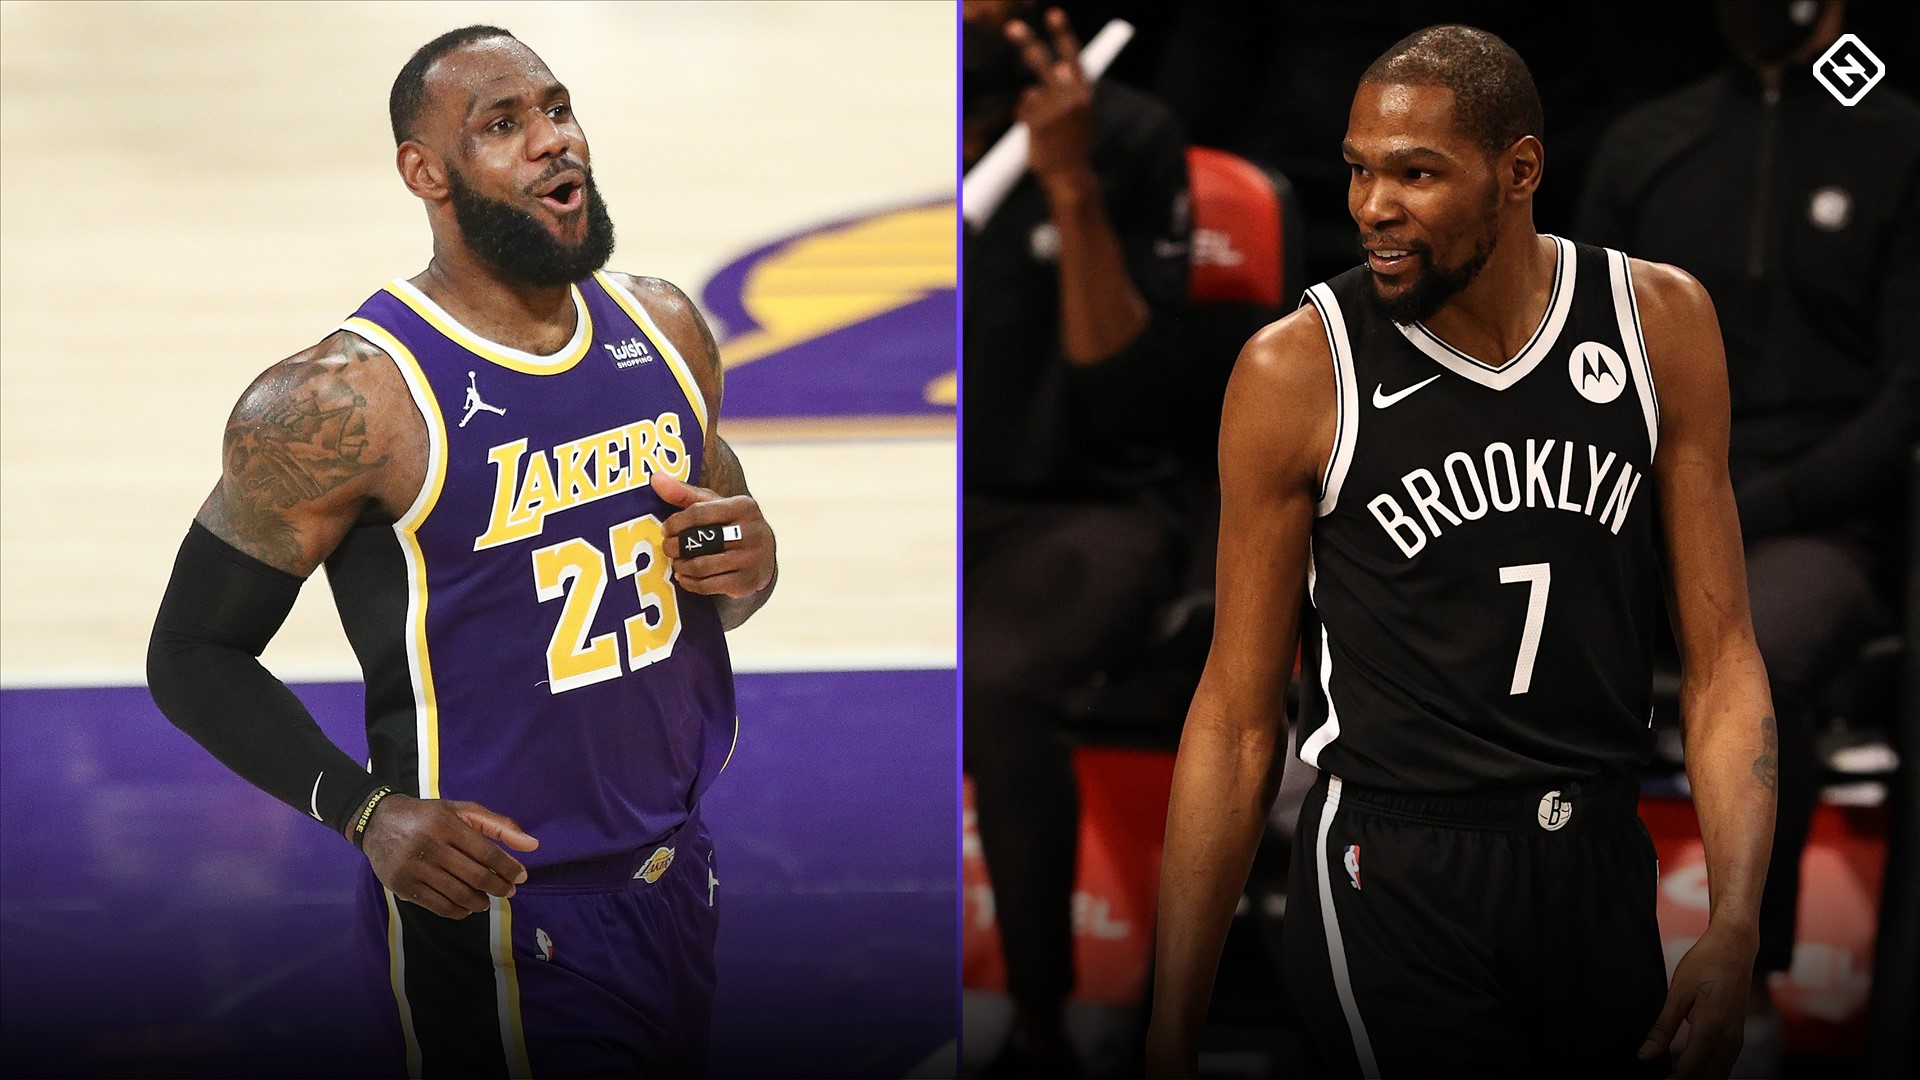 NBA All-Star rosters 2021: Full results, draft picks for Team LeBron vs. Team Durant